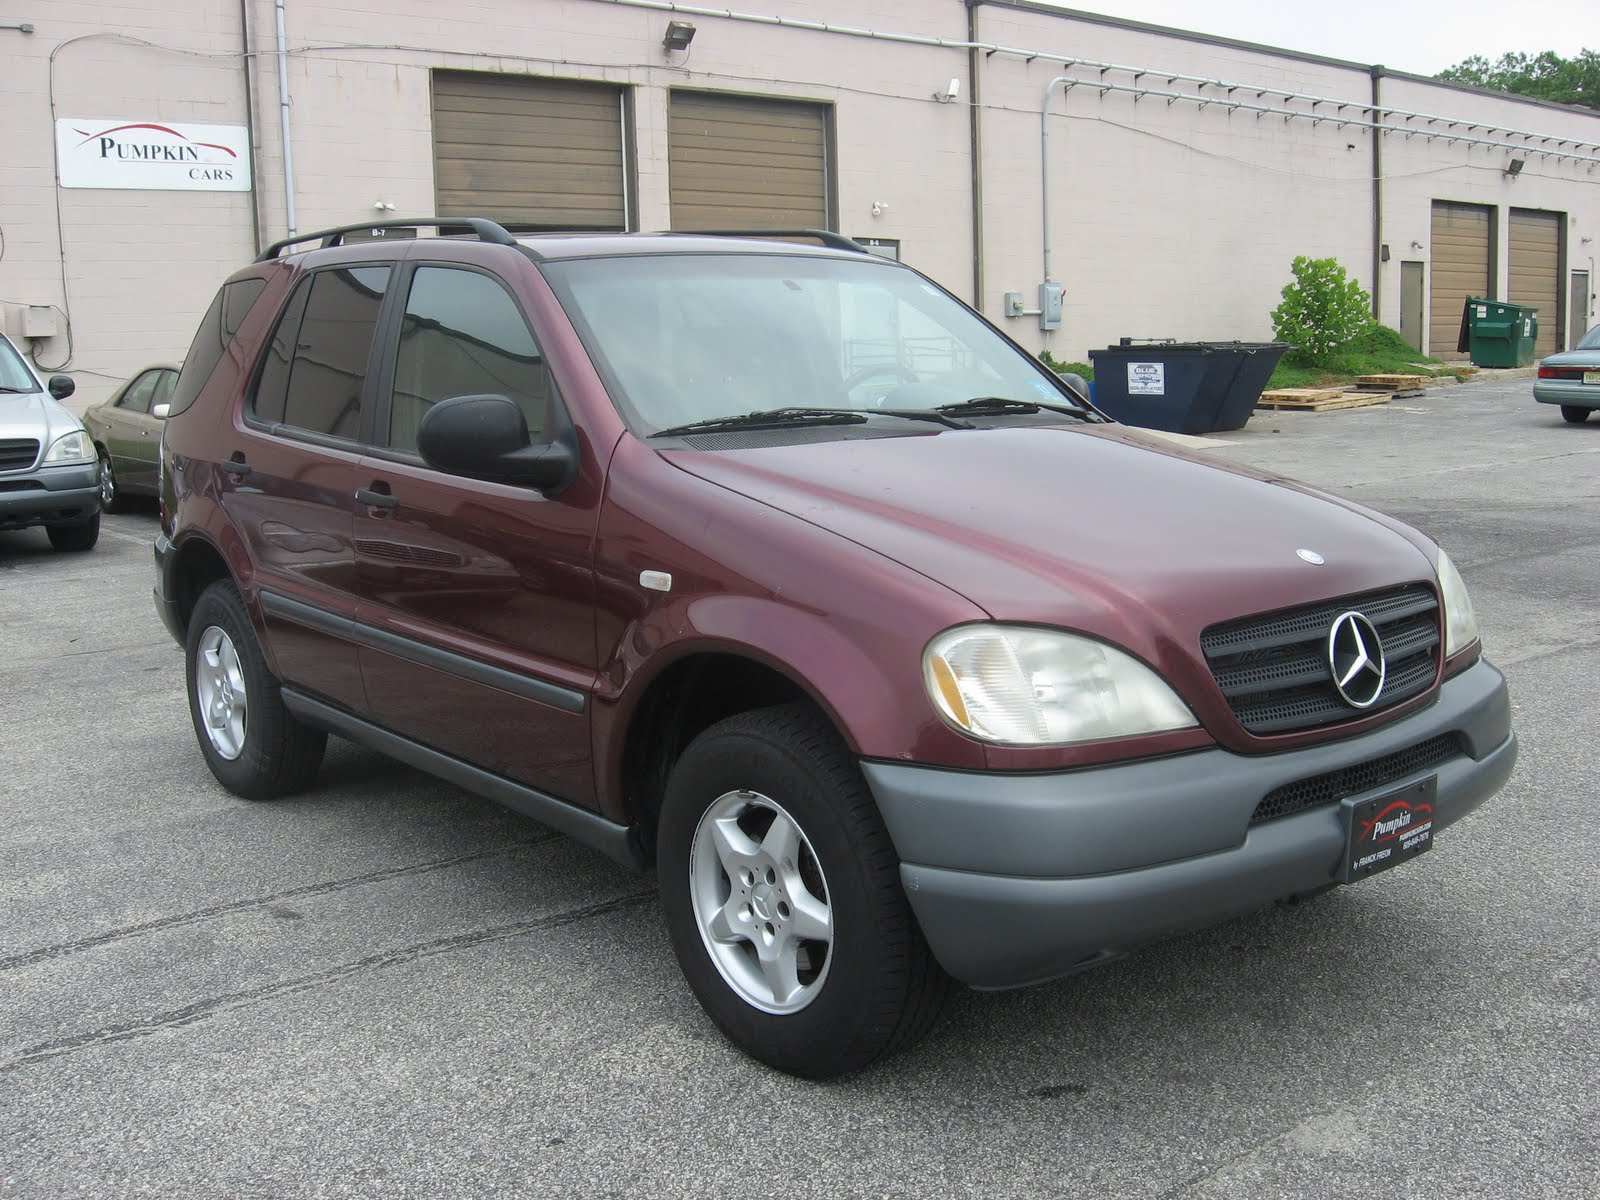 Next We Have A 1998 Mercedes Benz Ml320 With Third Row 7 Penger Seating Rare Find This Vehicle Was Taken In On Trade By Loyal Pumpkin Customer